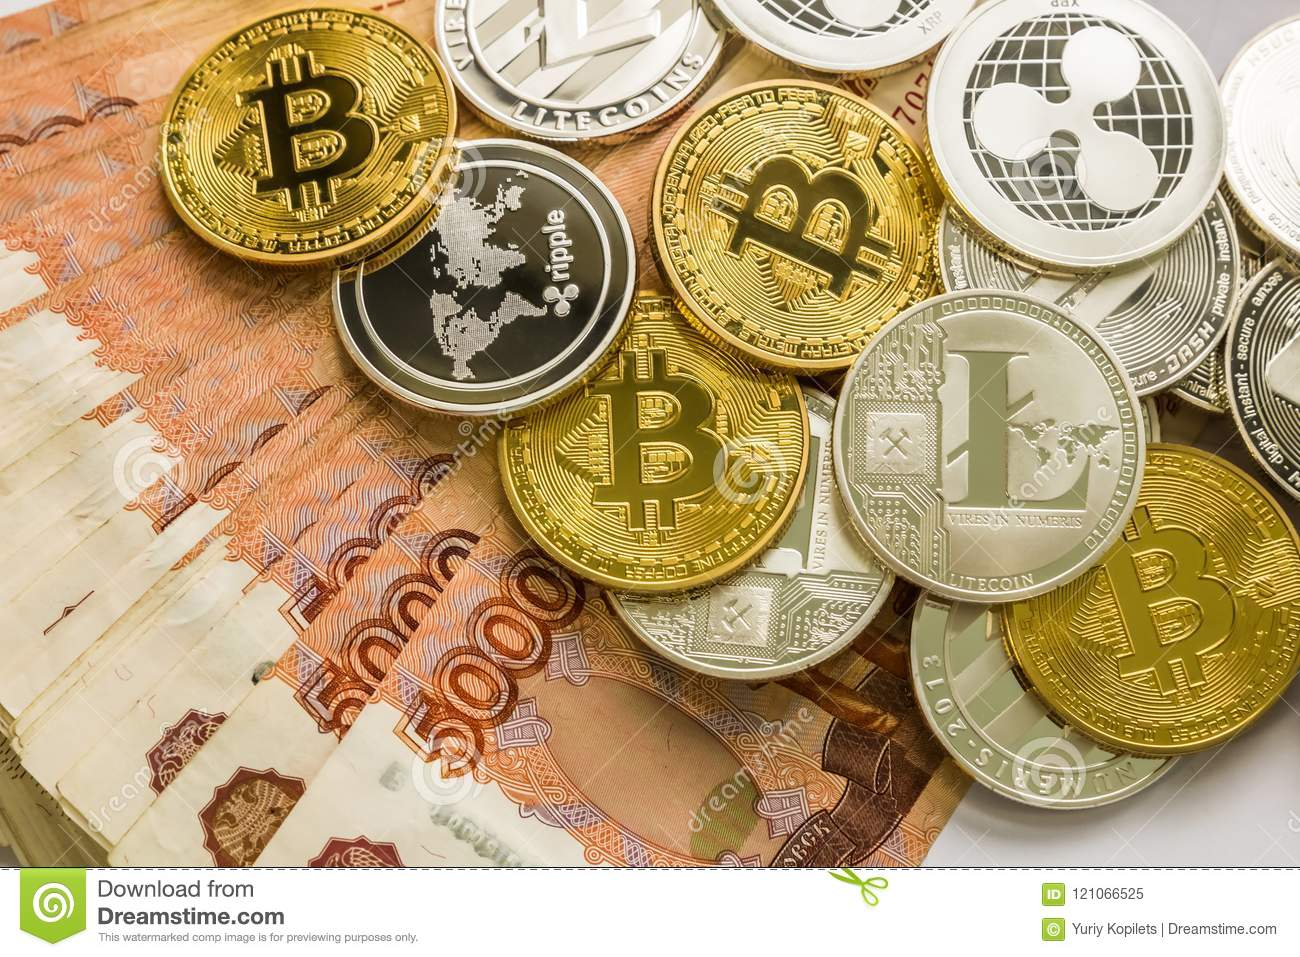 How to exchange Bitcoin for rubles 64